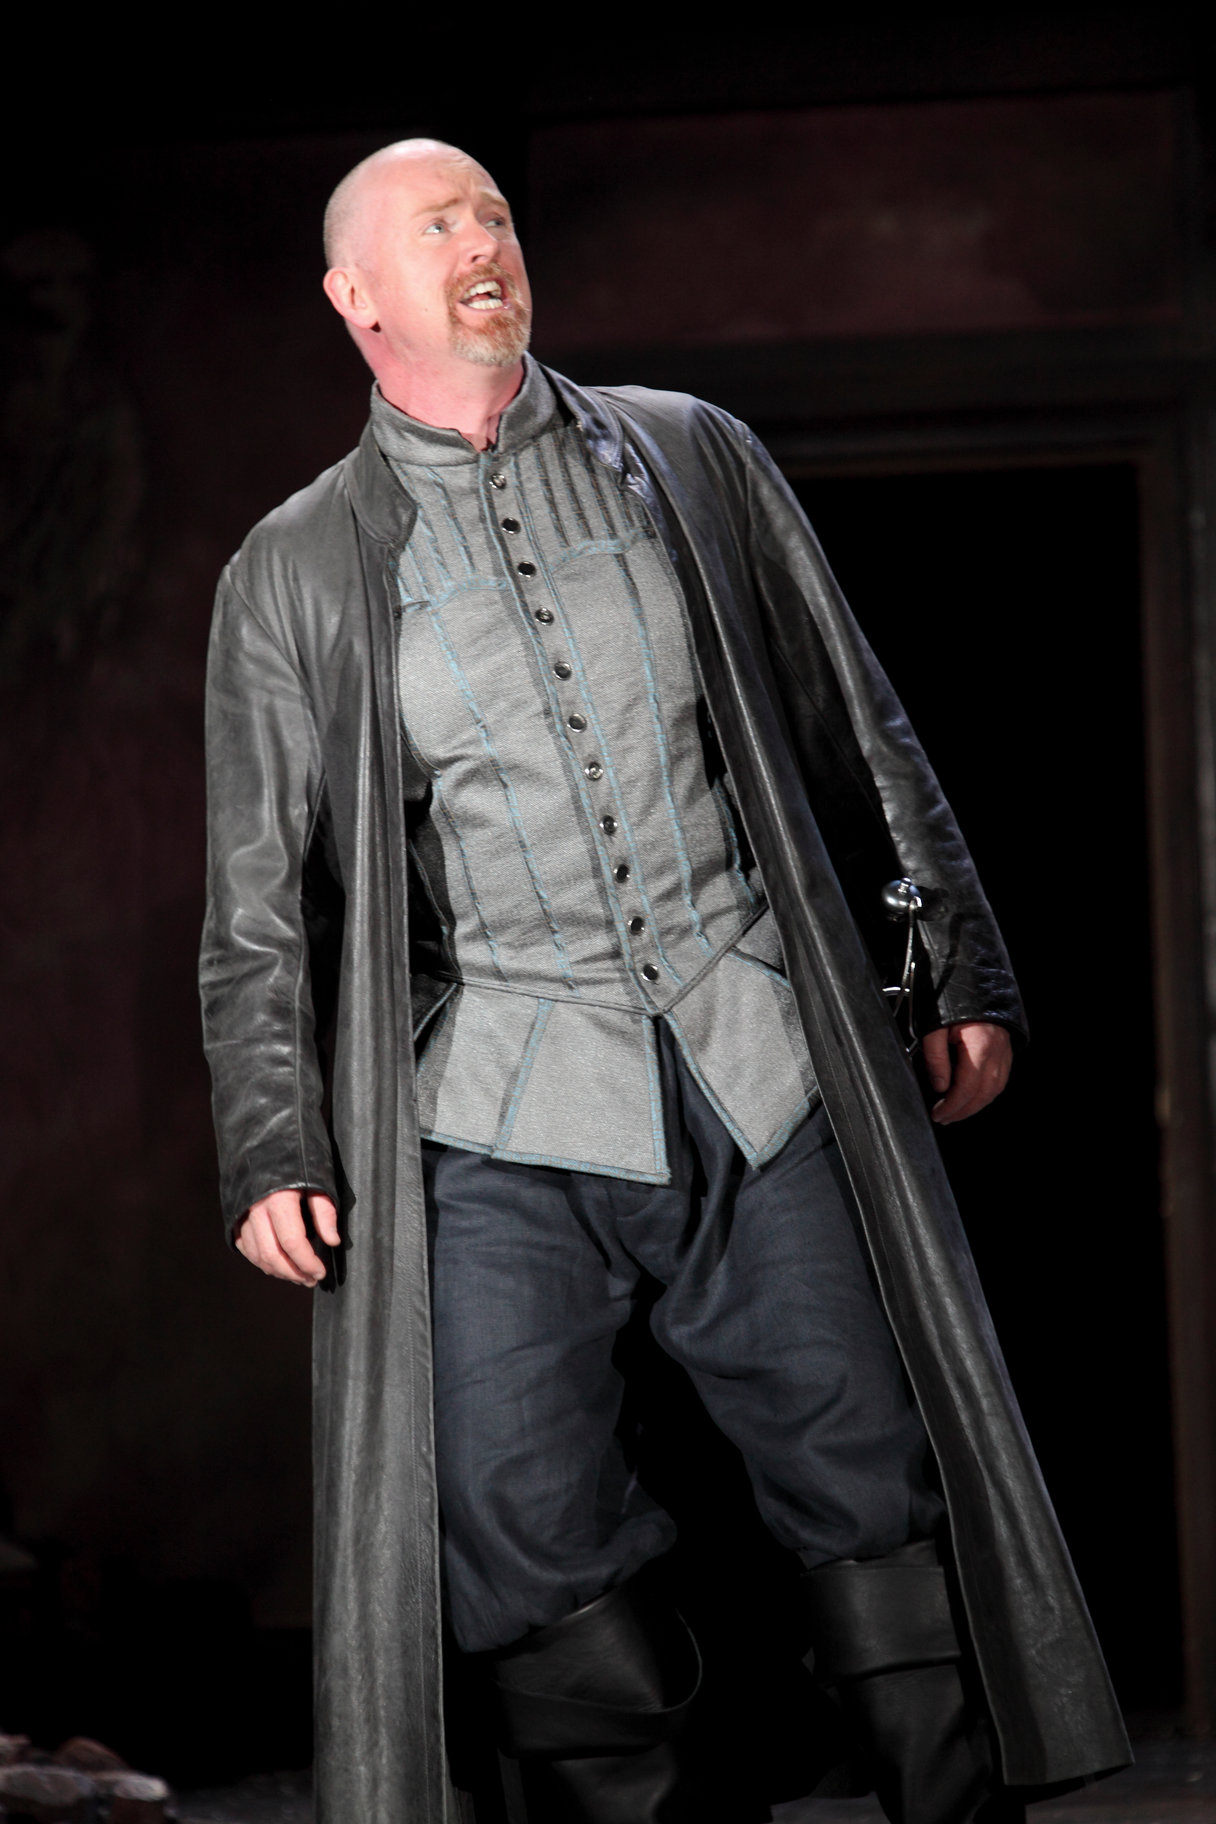 Macduff in long black leather coat